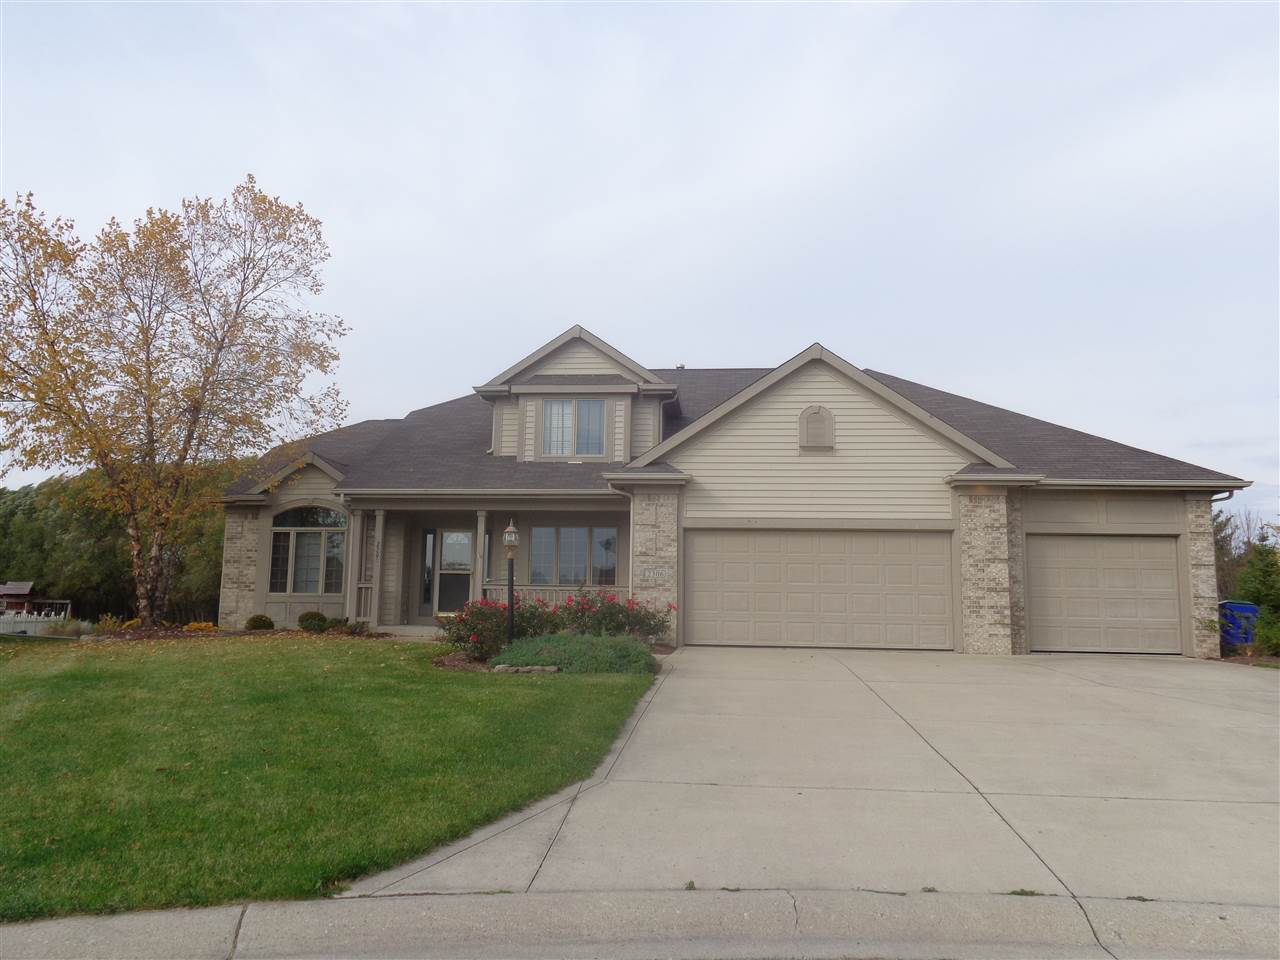 2306 Pine Point Cove, Fort Wayne, IN 46814